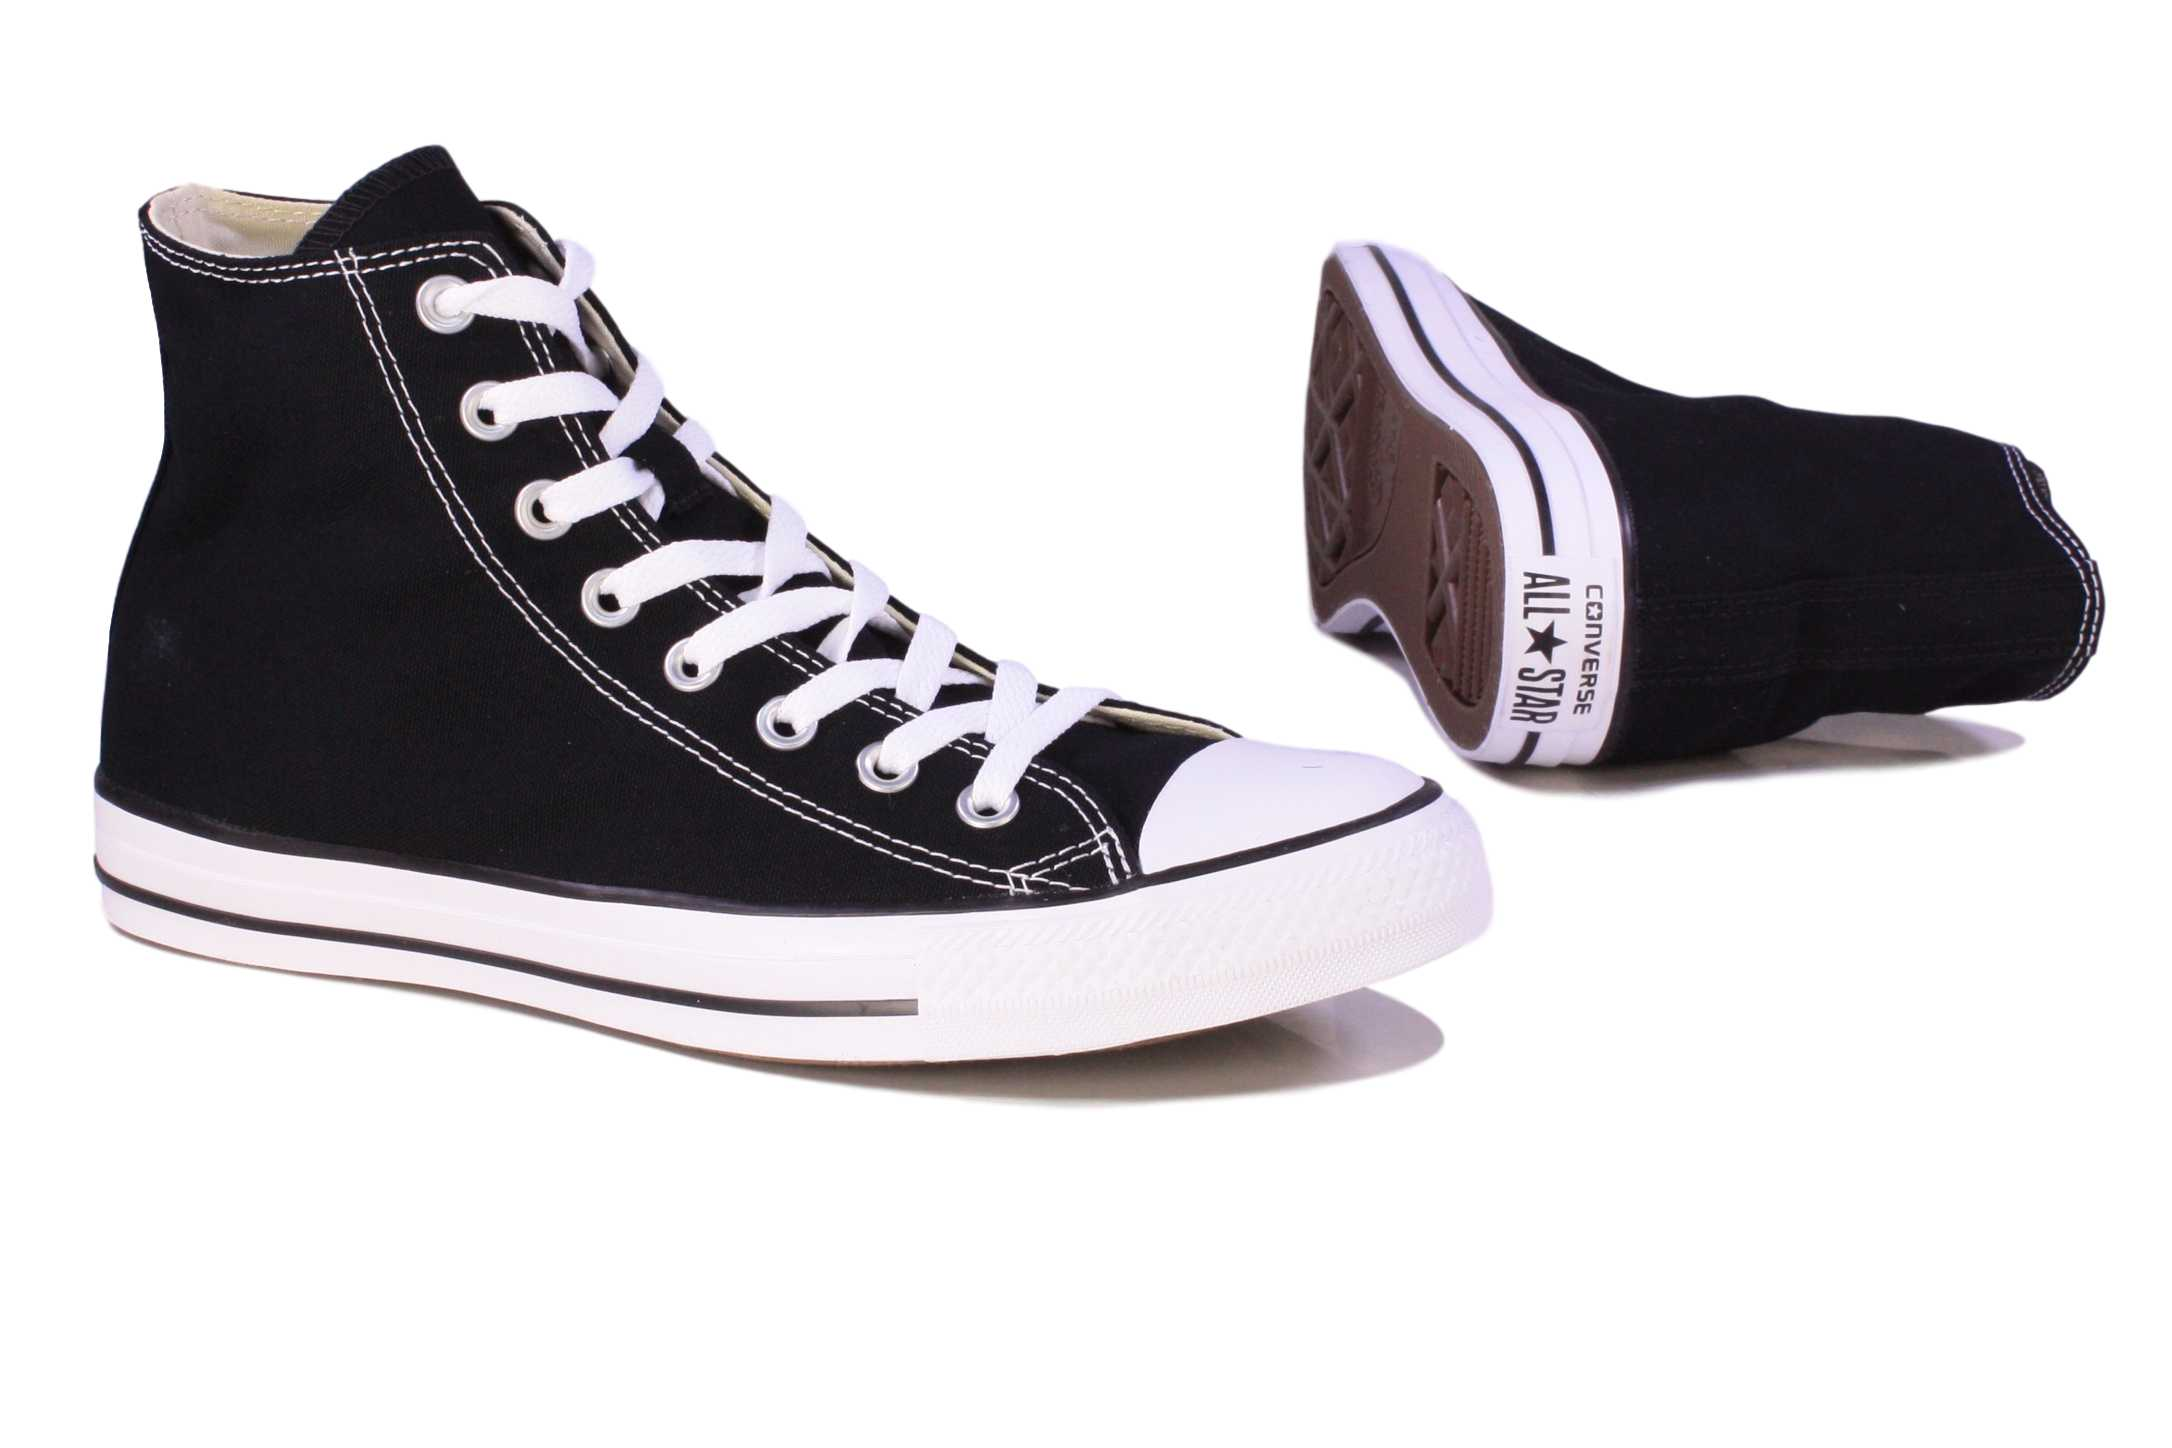 ALL STAR HI M9160 (1056)